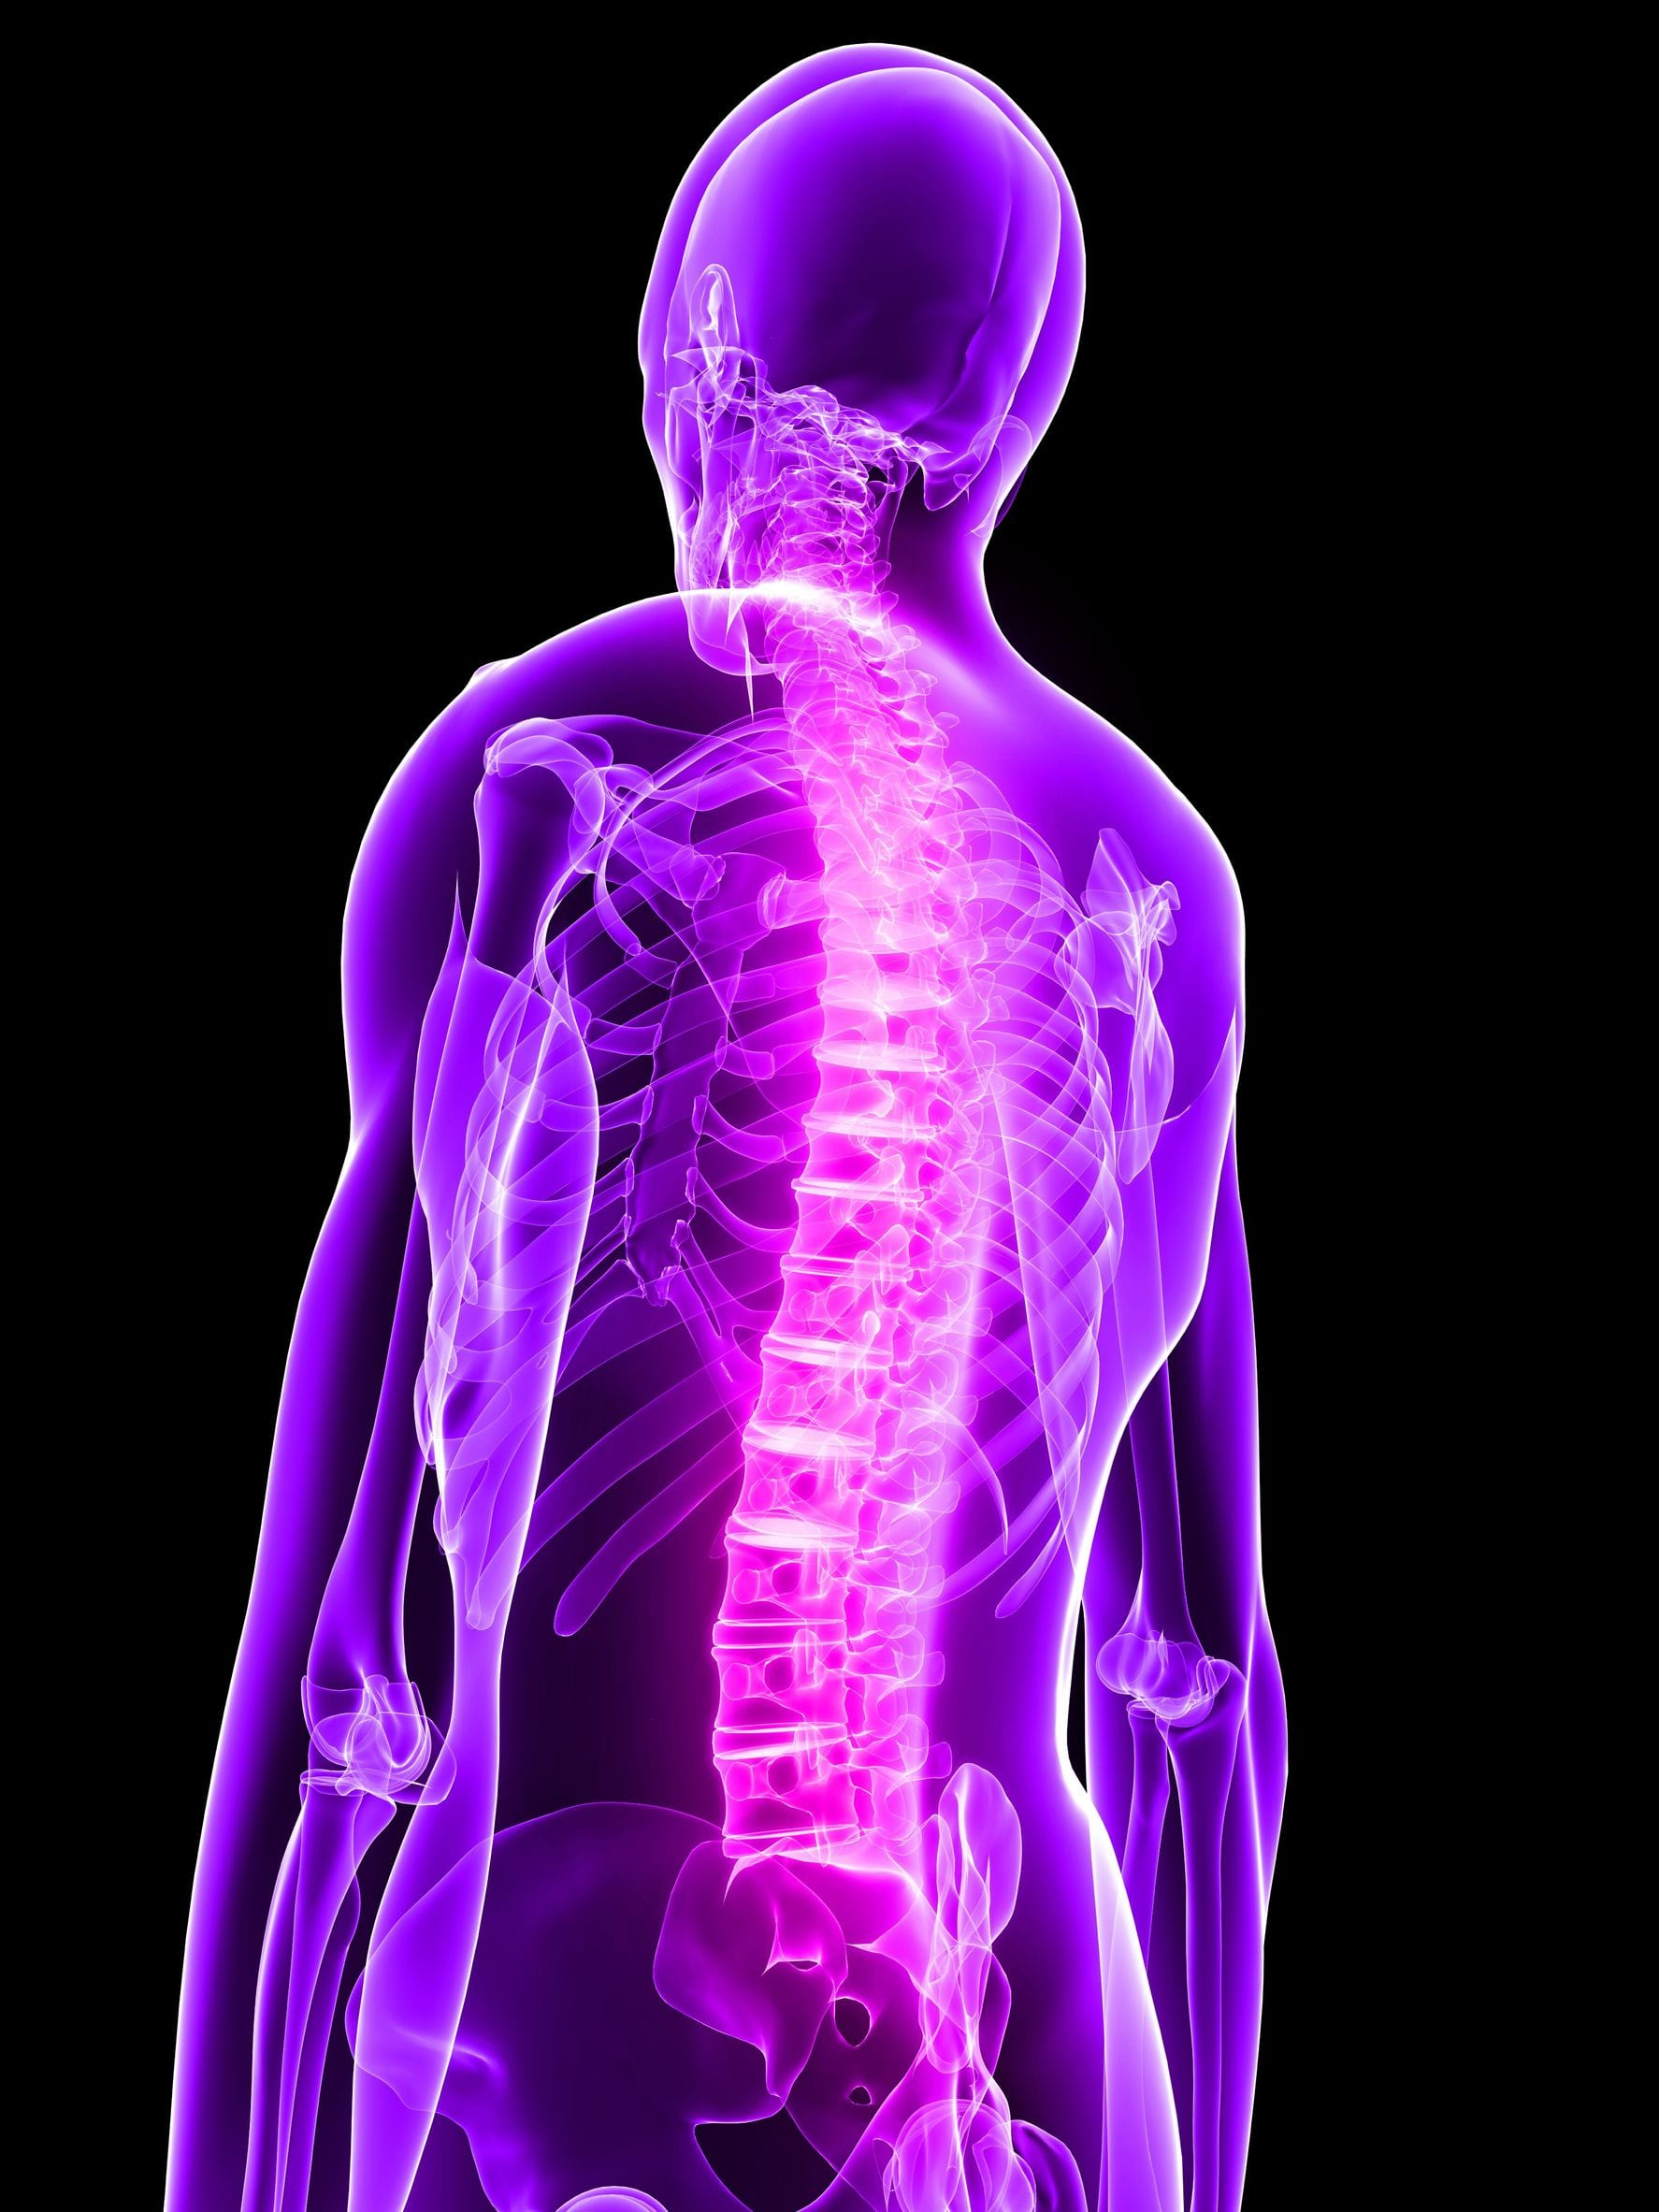 skeleton - Back Pain and Neurosurgery Specialists in Fort Myers, FL